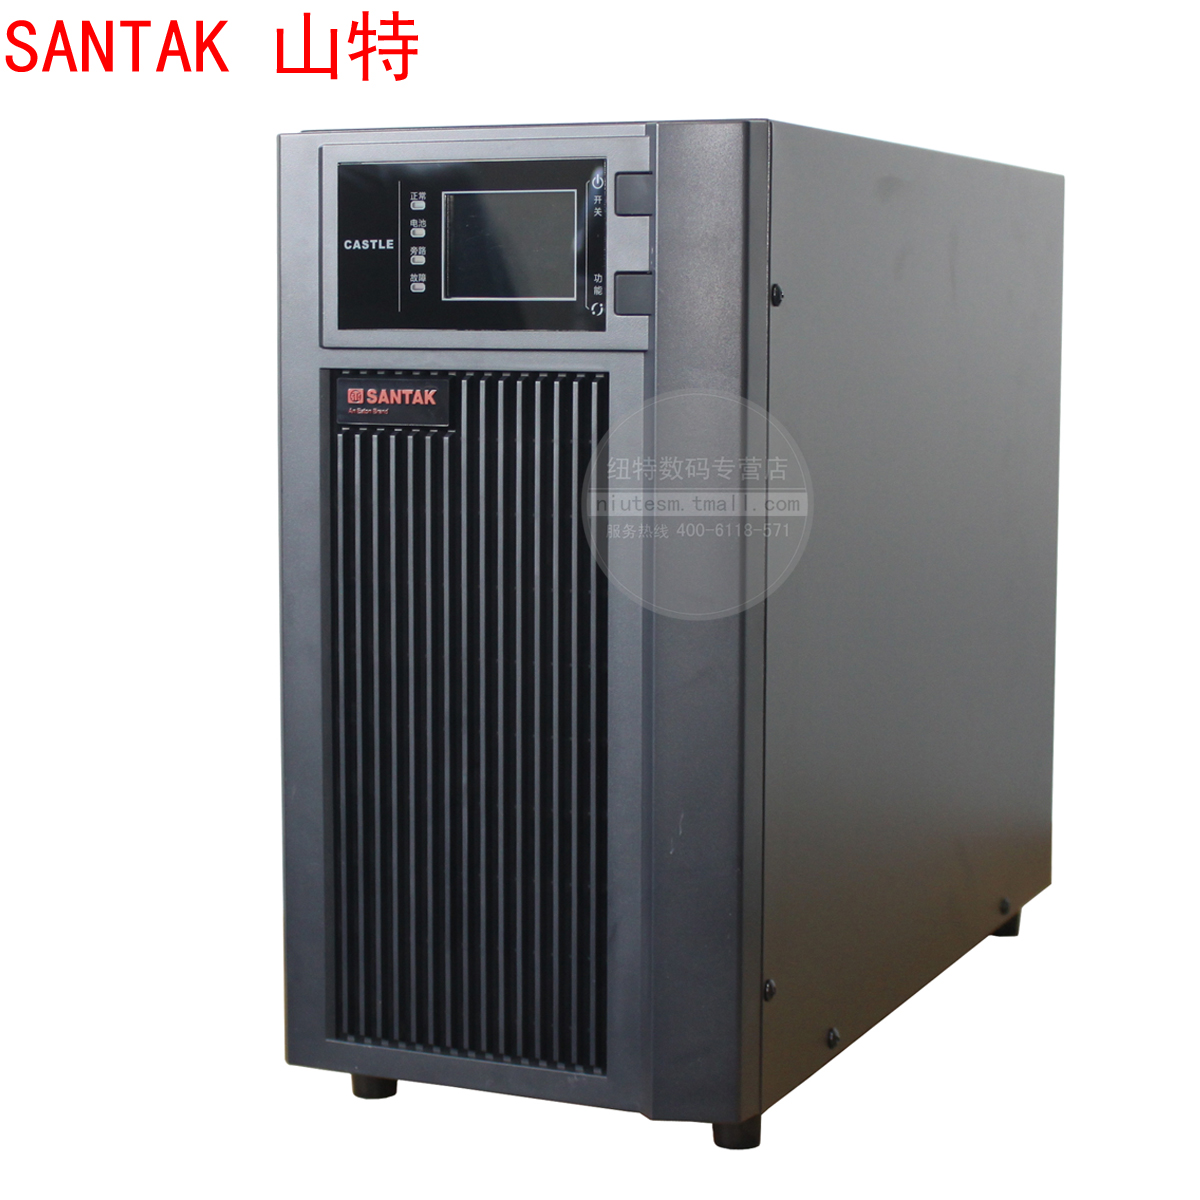 Santa UPS Uninterruptible Power Supply 6KVA 8 hours C6KS 5400W Online Battery 100AH 32